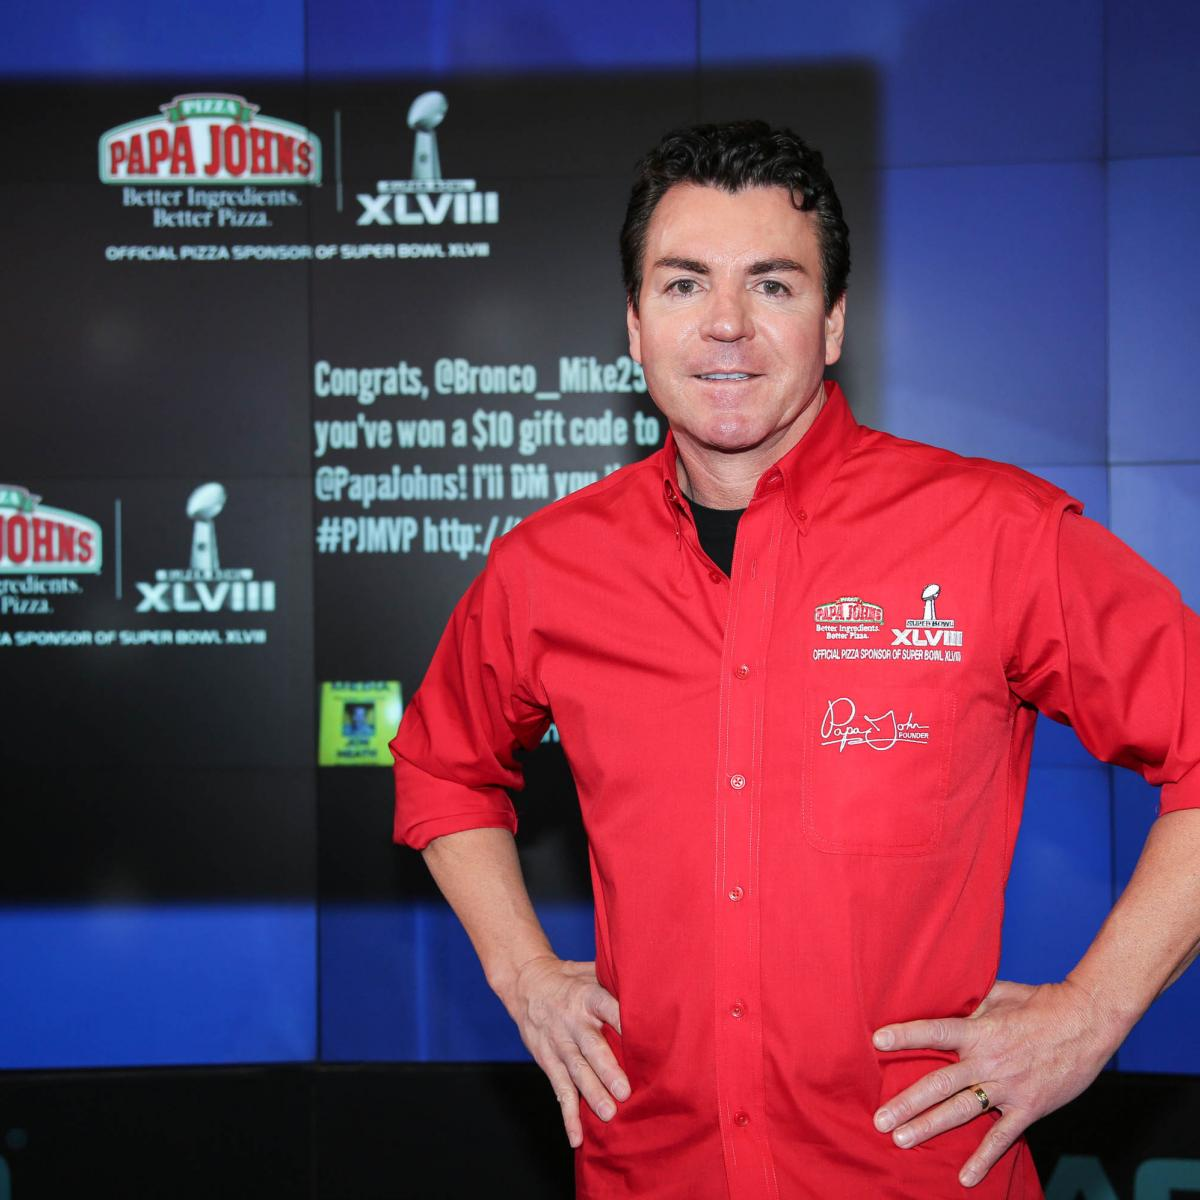 Marlins Suspend Papa John's Relationship After Founder's Use of Racial Slur